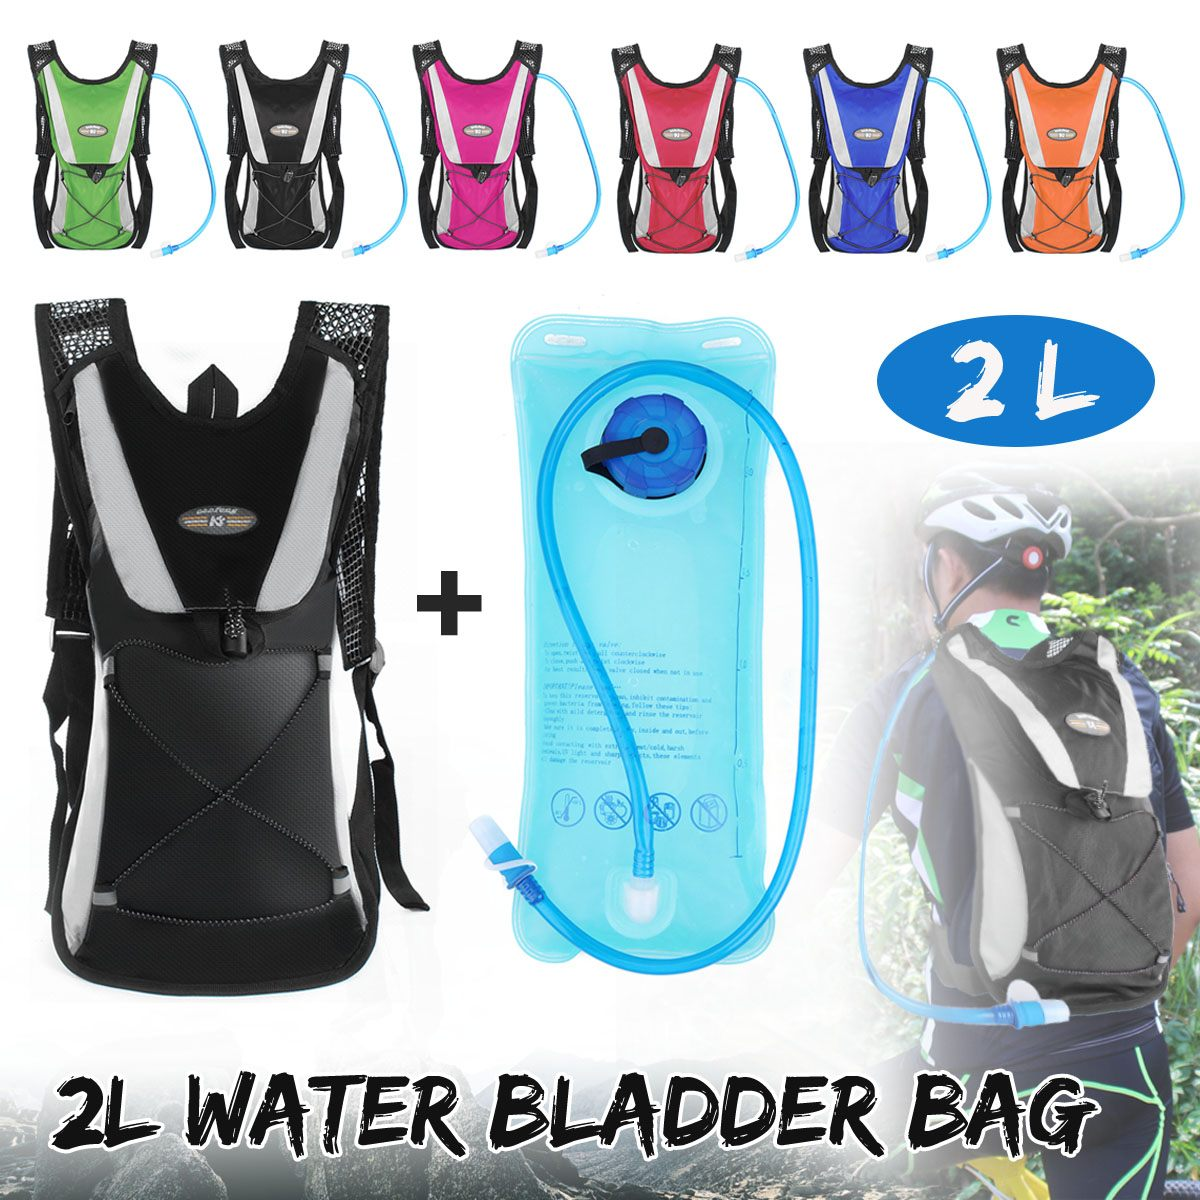 2L 6 Color Outdoor Portable Water Bladder Bag Hydration Backpack Sports Camping Hiking For Cycling Bicycle Hiking Bike Mountain